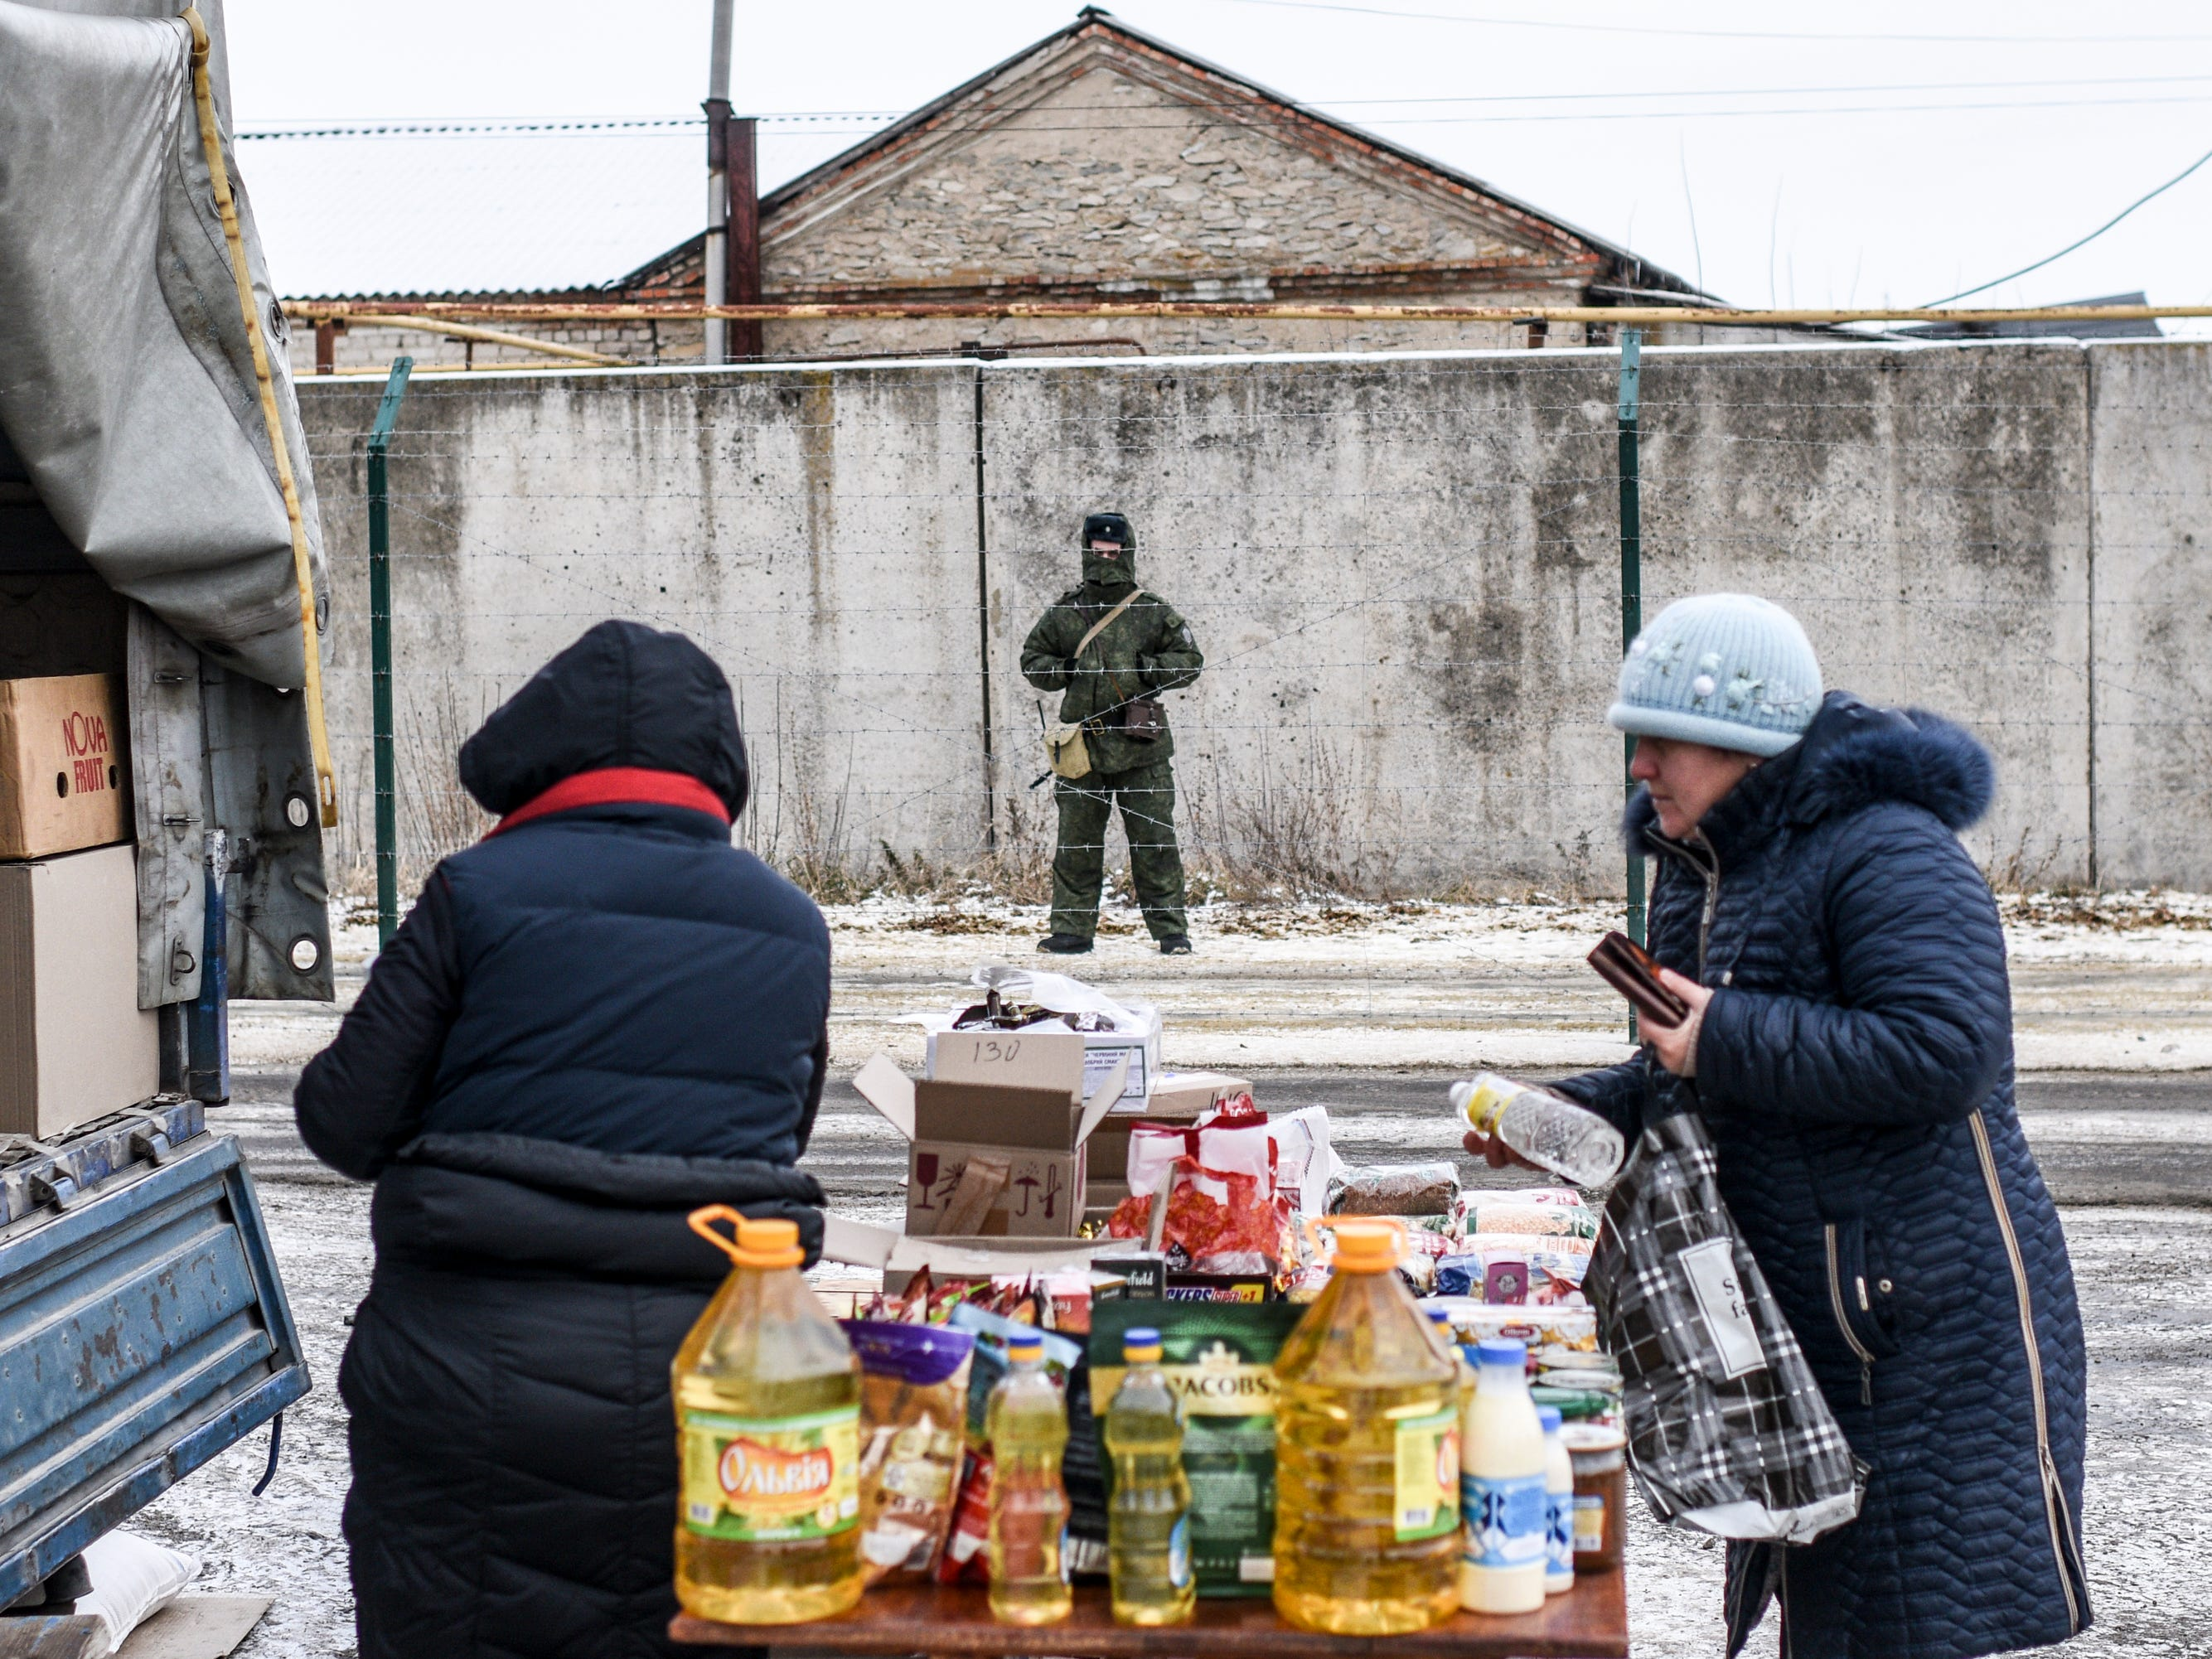 In this photo taken on Saturday, Dec. 1, 2018, A Russian border guard stands behind barbed wire on the Russian side of the Russia-Ukraine border as people buy and sell at Saturday's market in Milove, eastern Ukraine, one village, which is crossed by the main road called Friendship of People's Street and barbed wire. People on the streets easily mix both Russia and Ukrainian languages without making a political statement of it, but earlier this year, Russia built a barbed wire fence on the Friendship of People's street, marking the border with Ukraine in a metaphorical statement about the long-simmering conflict between the countries.